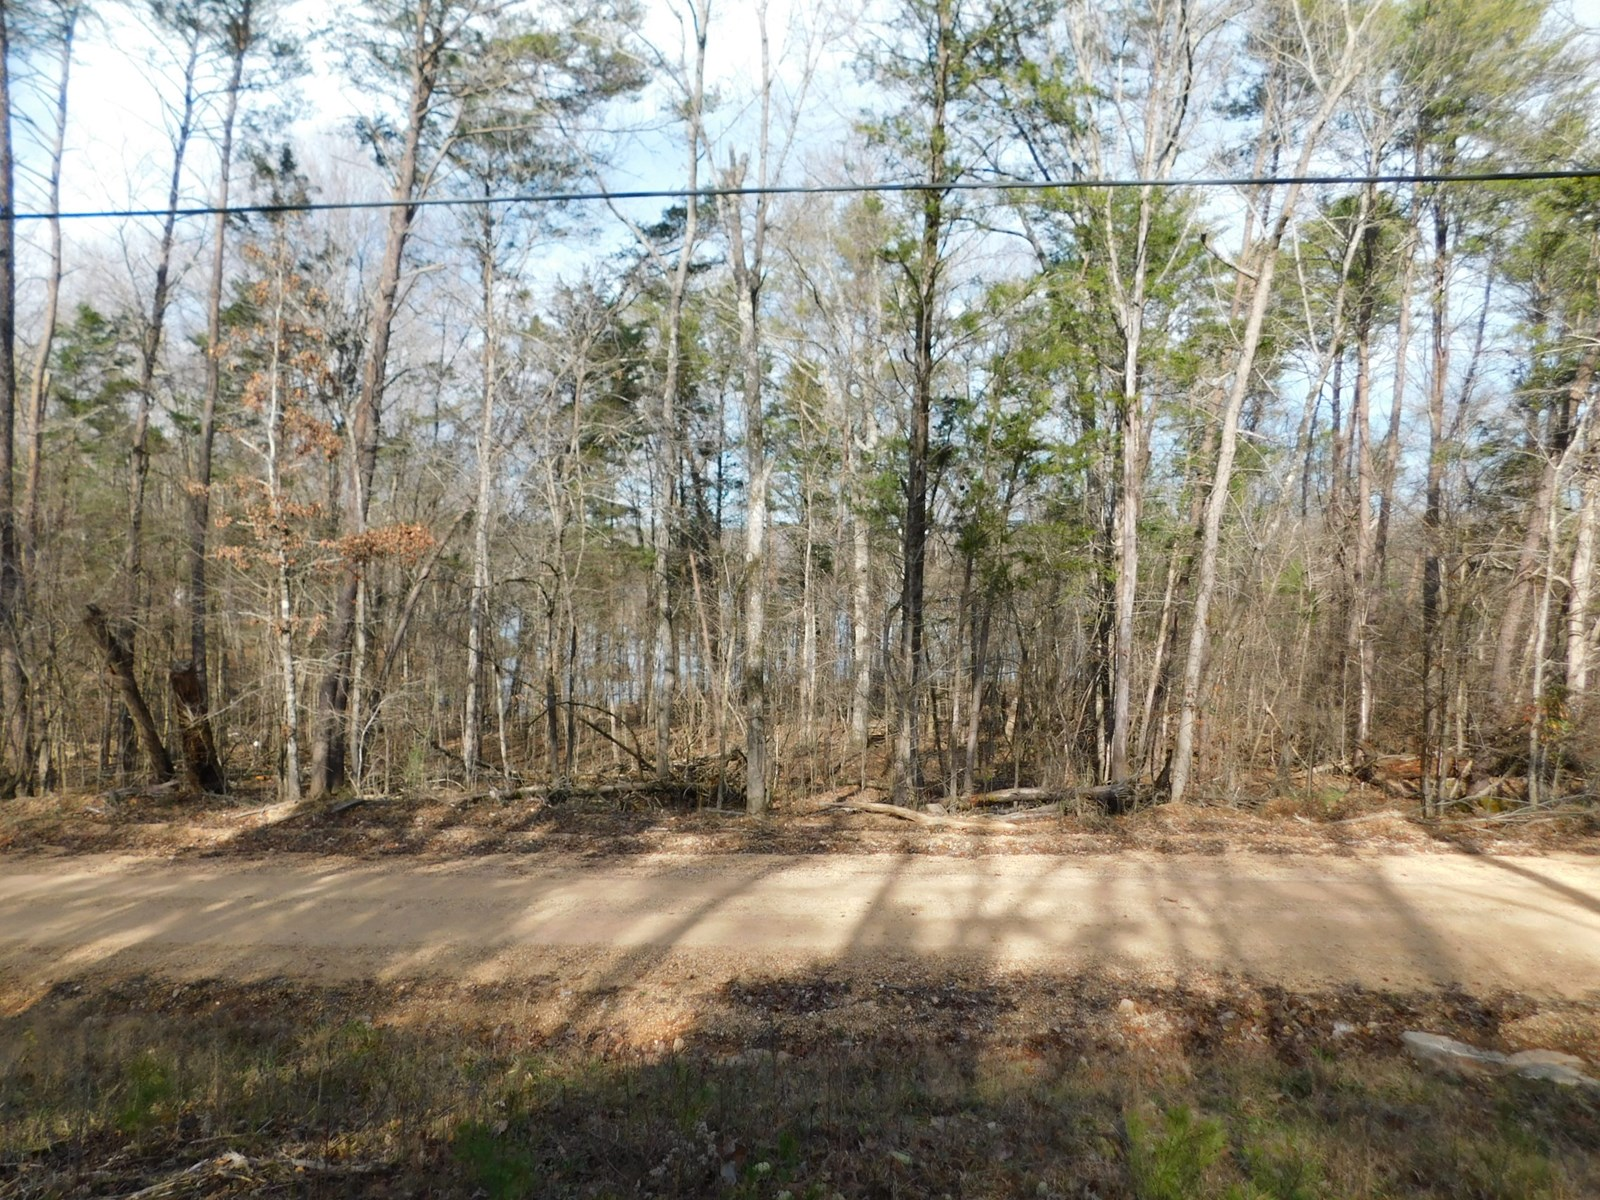 1AC LAND NEAR THE TN RIVER